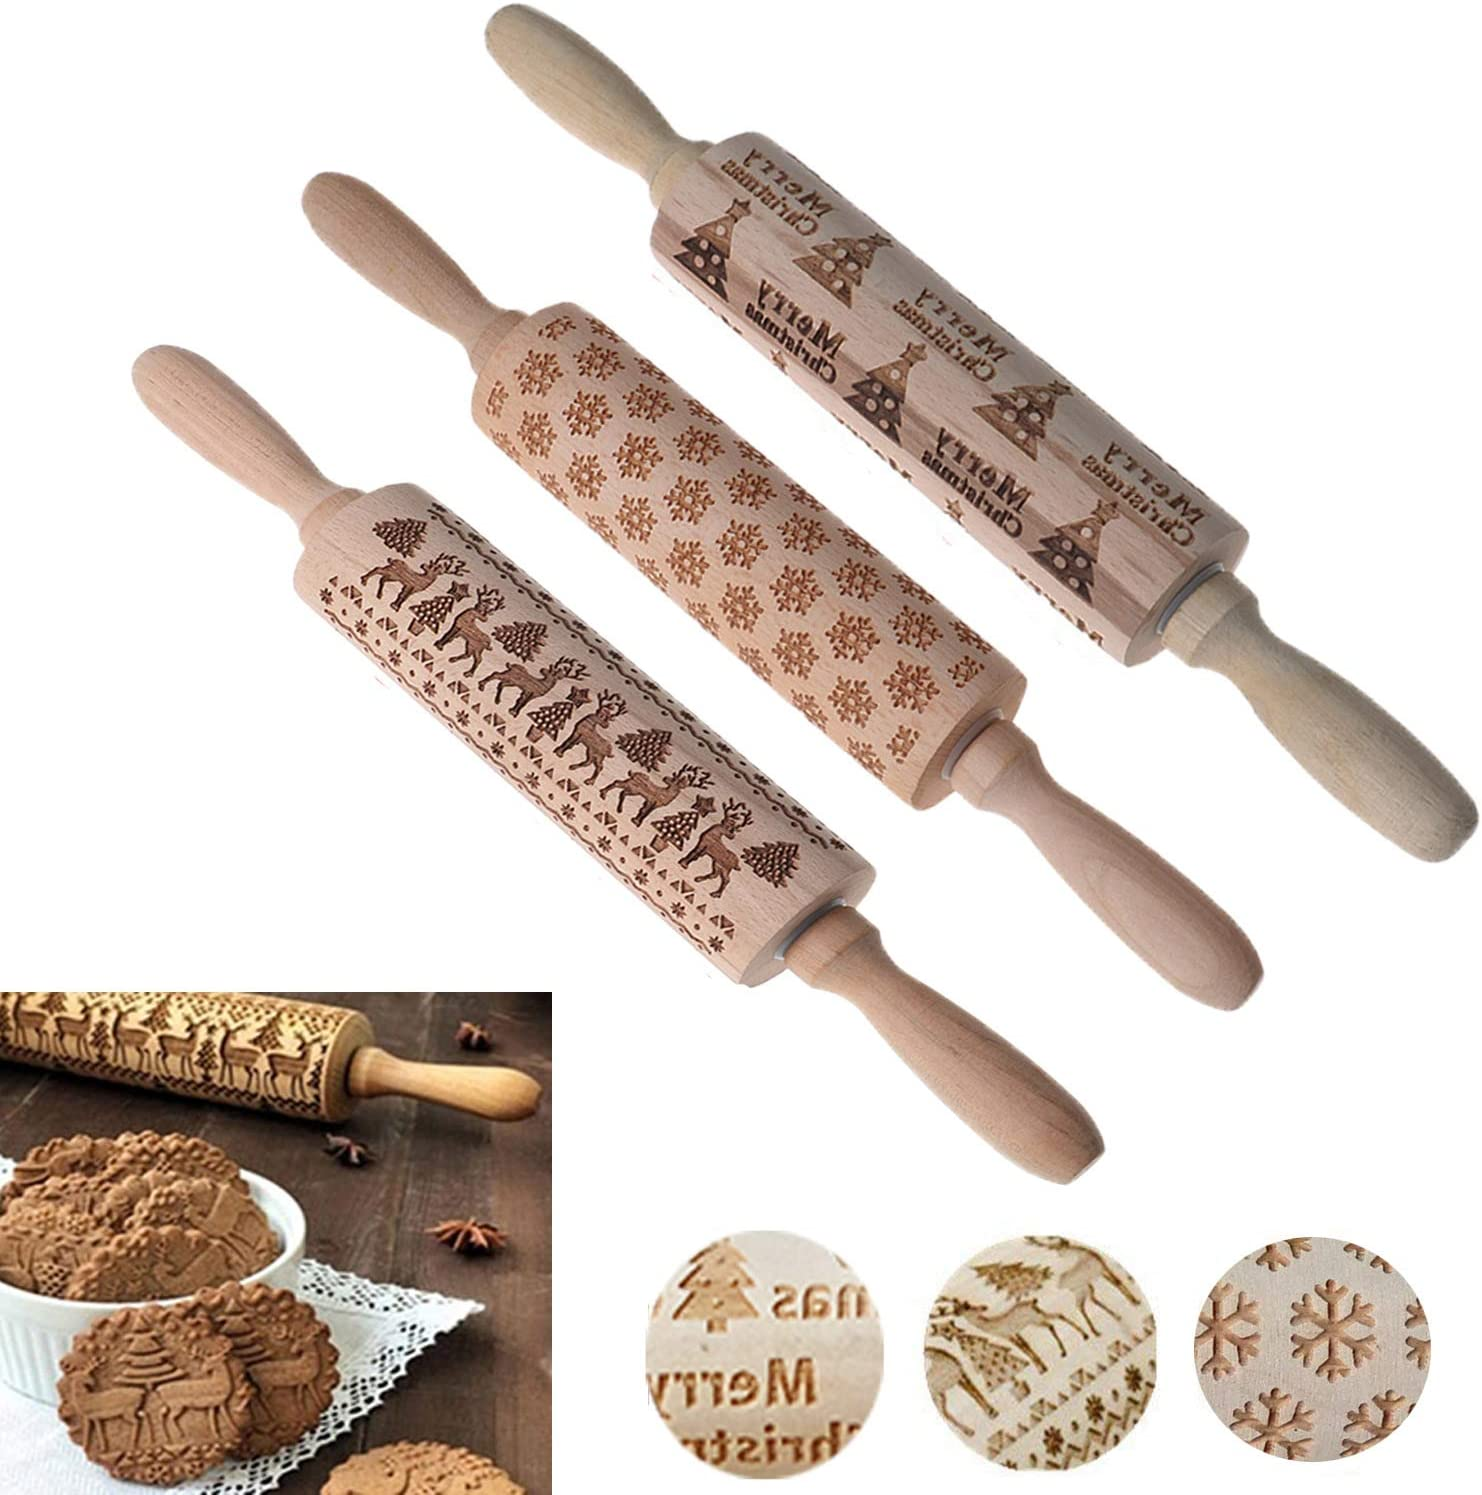 Ioffersuper 14in Christmas Embossed Wooden Rolling Pin Set, Including Snowflake/Xmas Tree/Elk Engraved Rolling Pin Baking Cookware Cake Sweets Handcraft Tool Kit